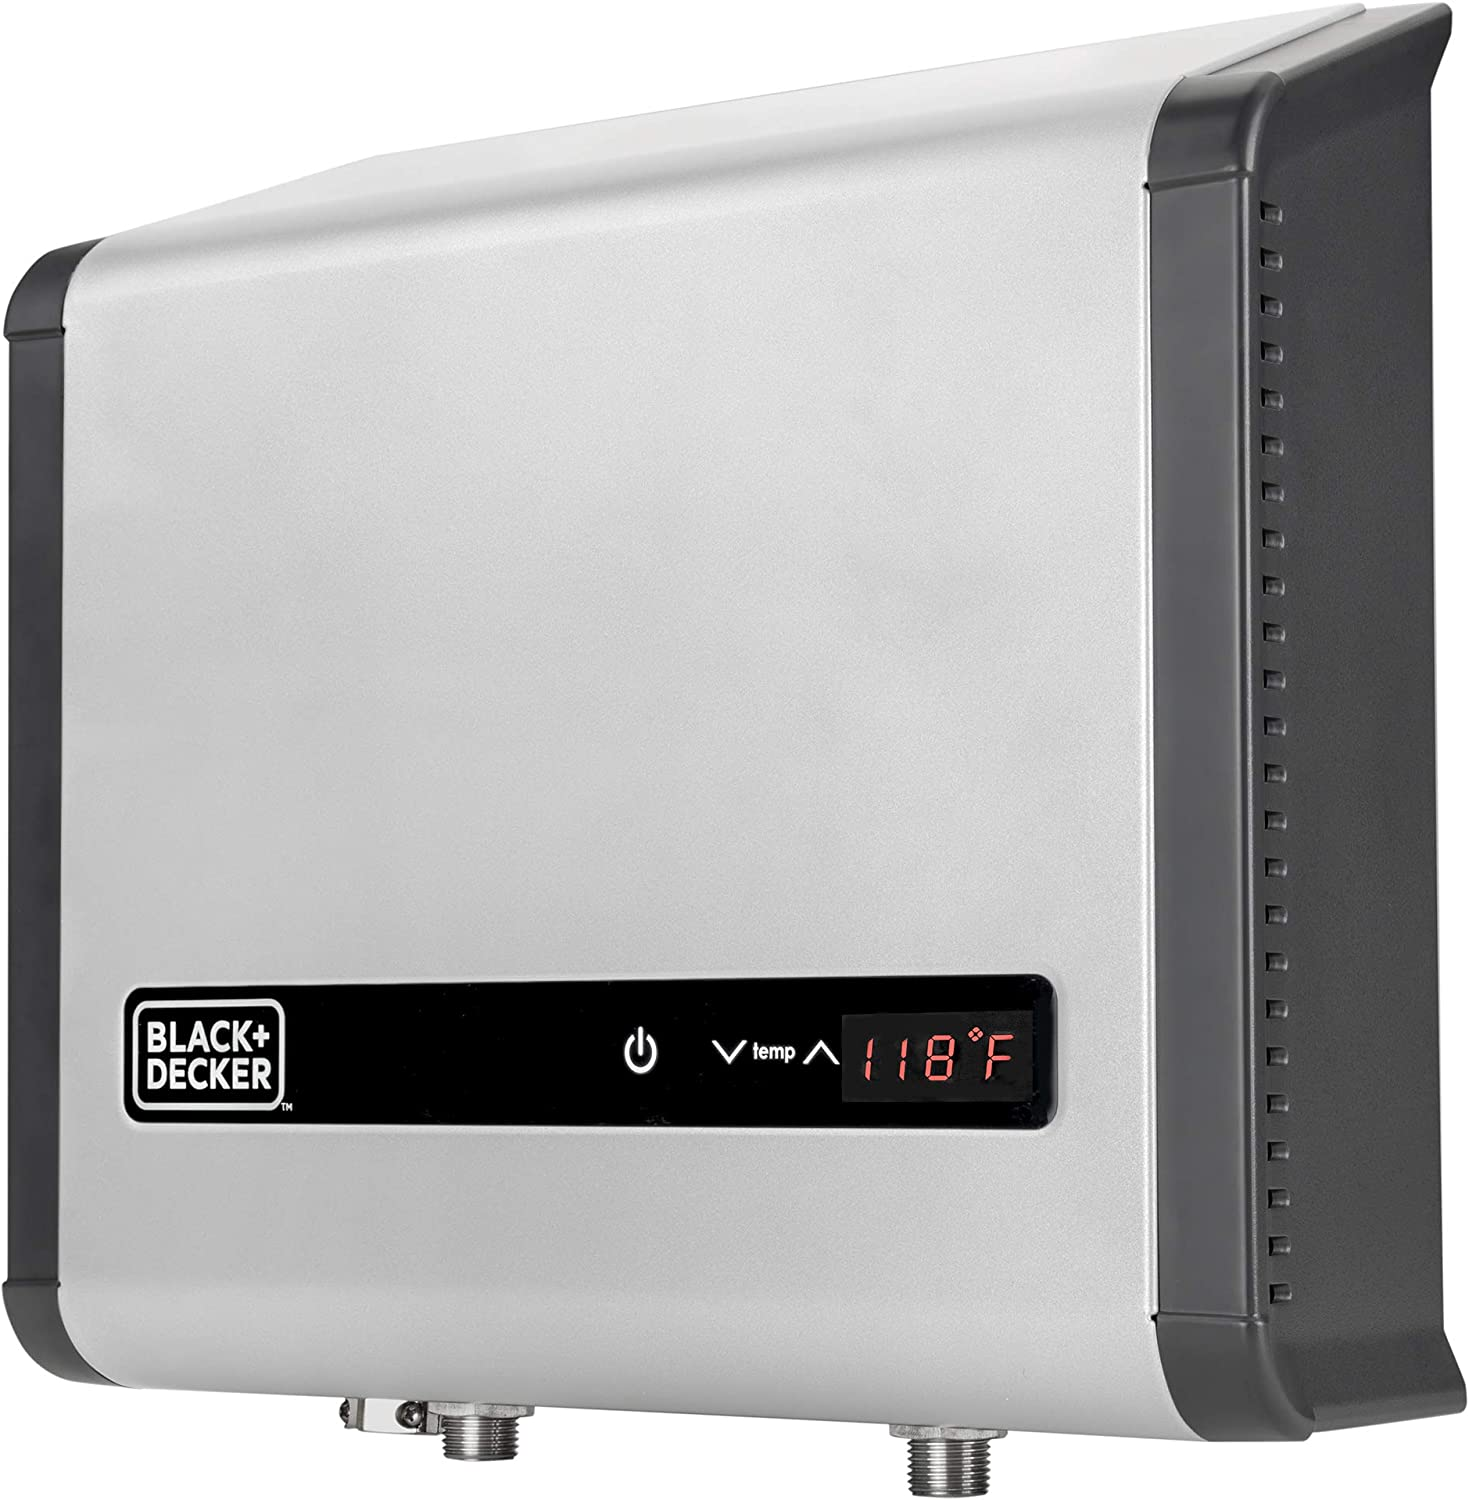 Black and Decker Electric tankless water heater